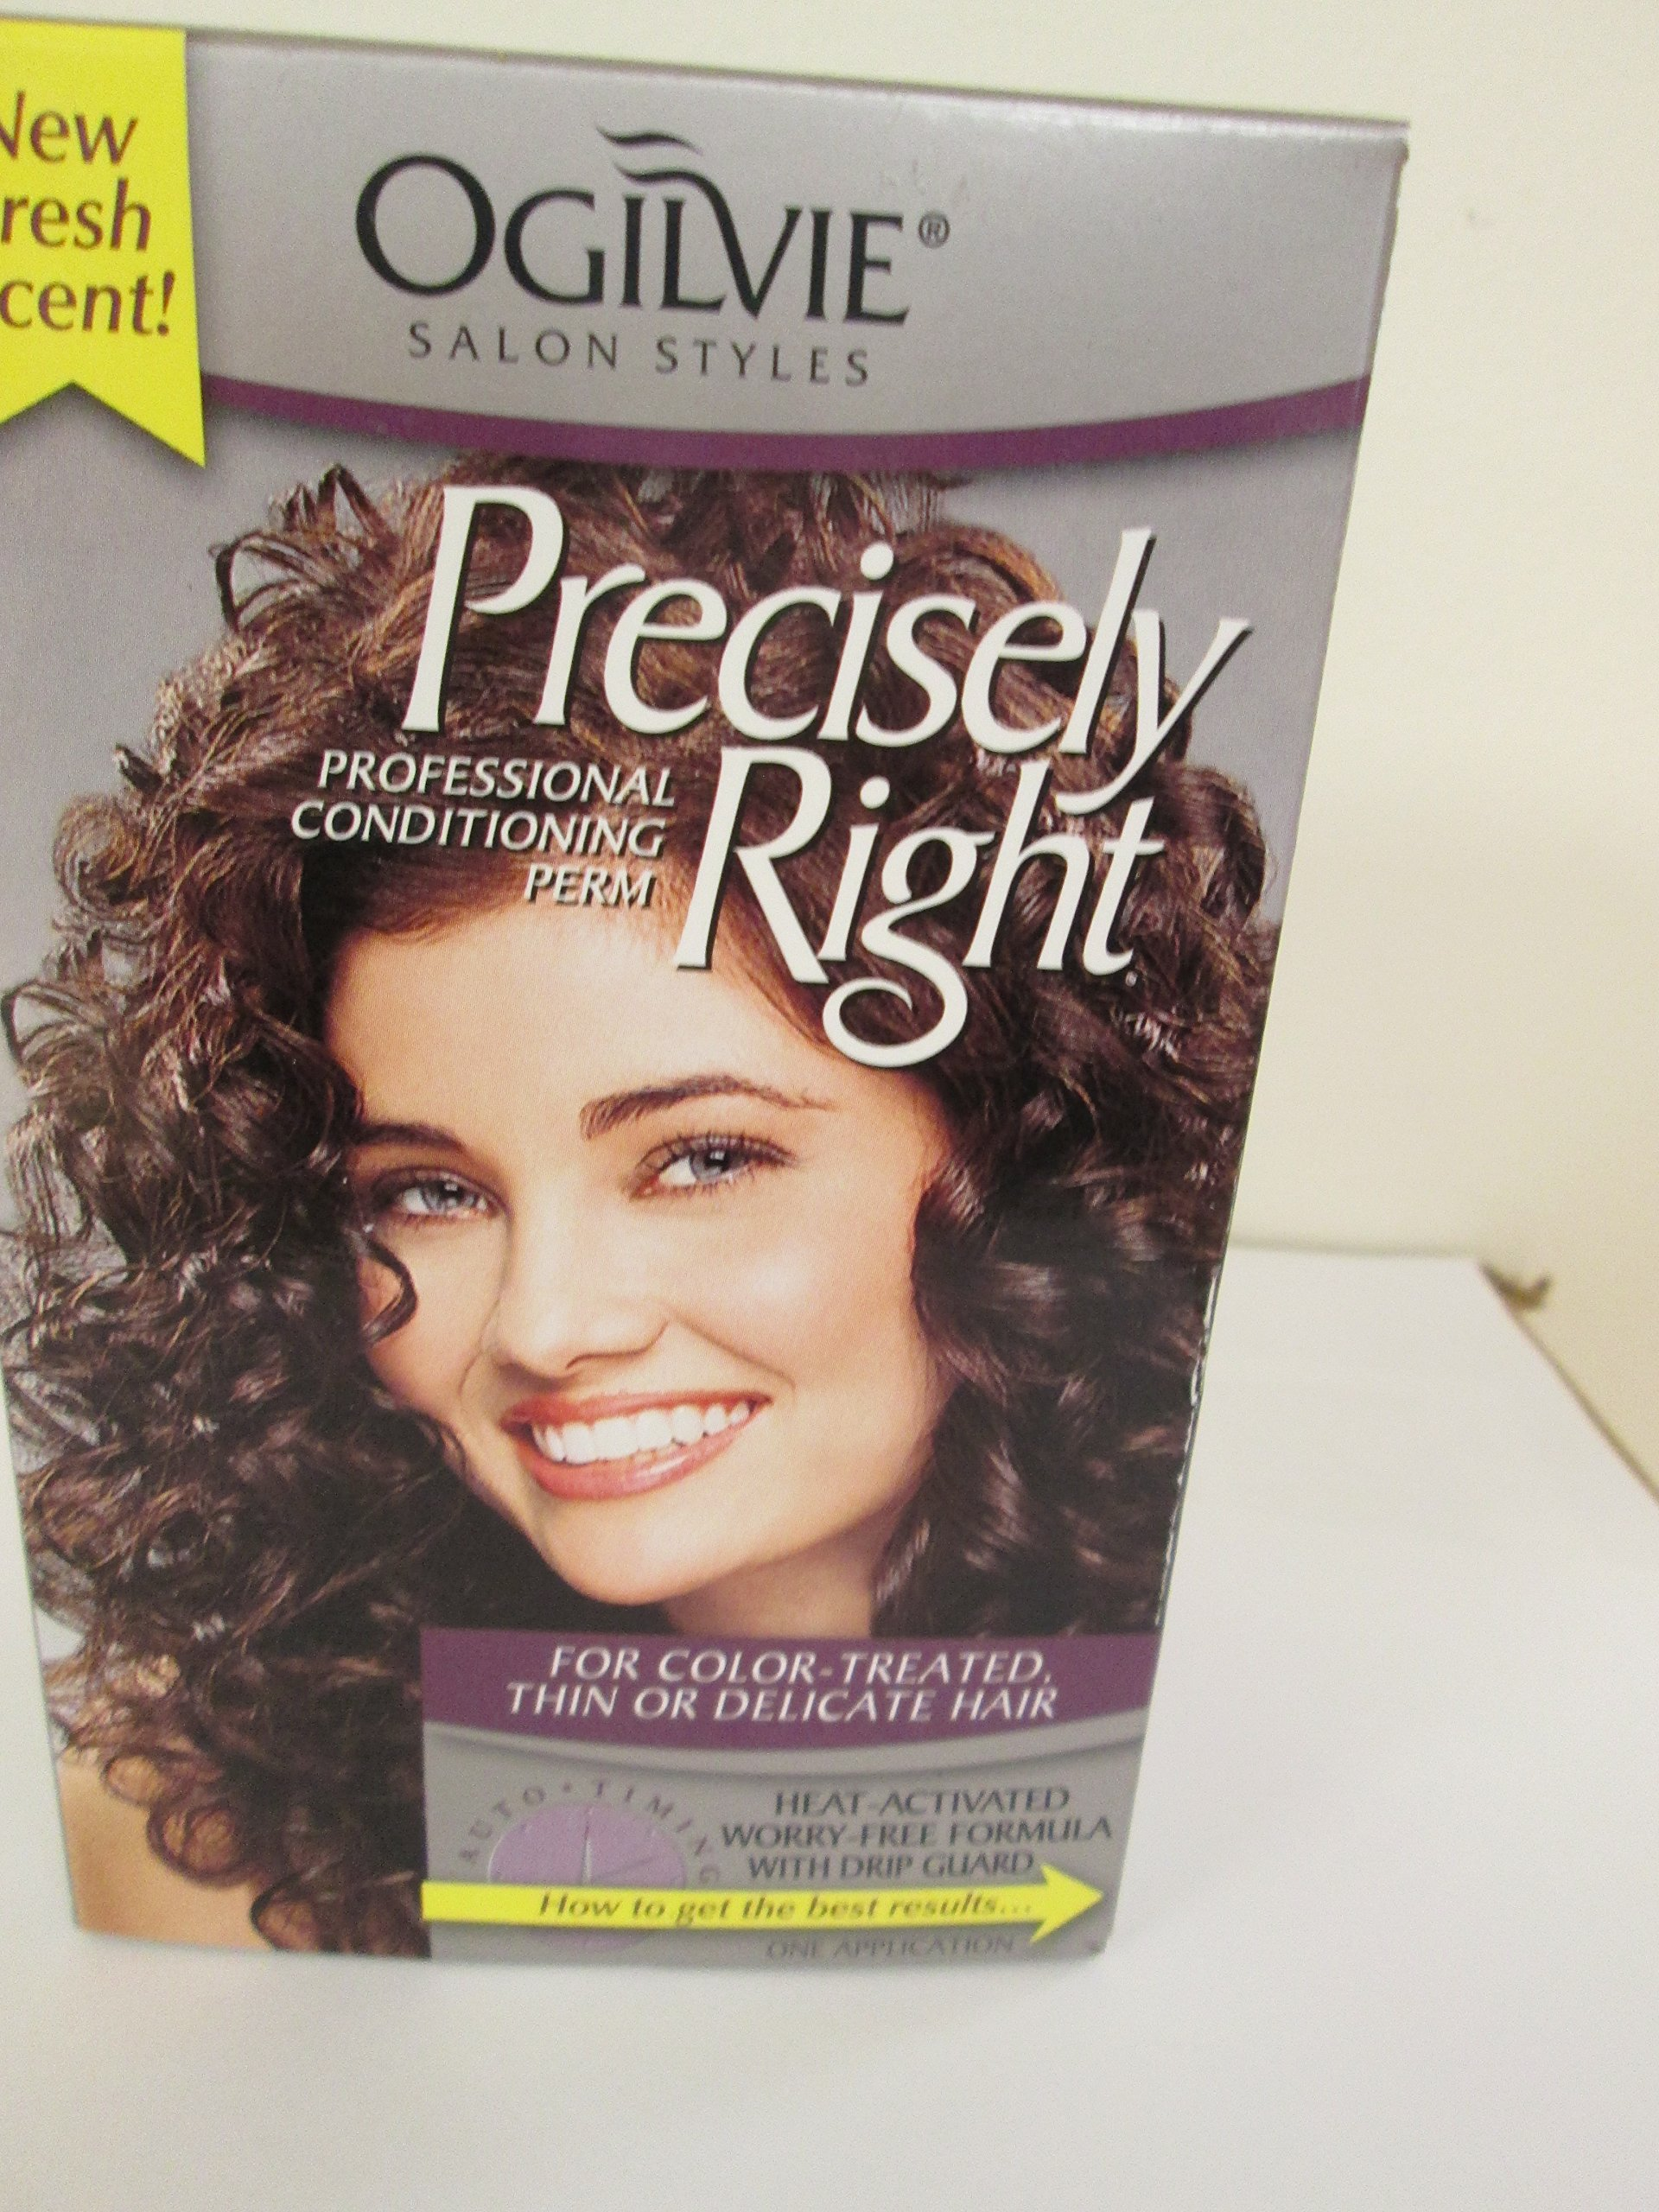 Ogilvie Precisely Right Perm: for Color-Treated Thin or Delicate Hair